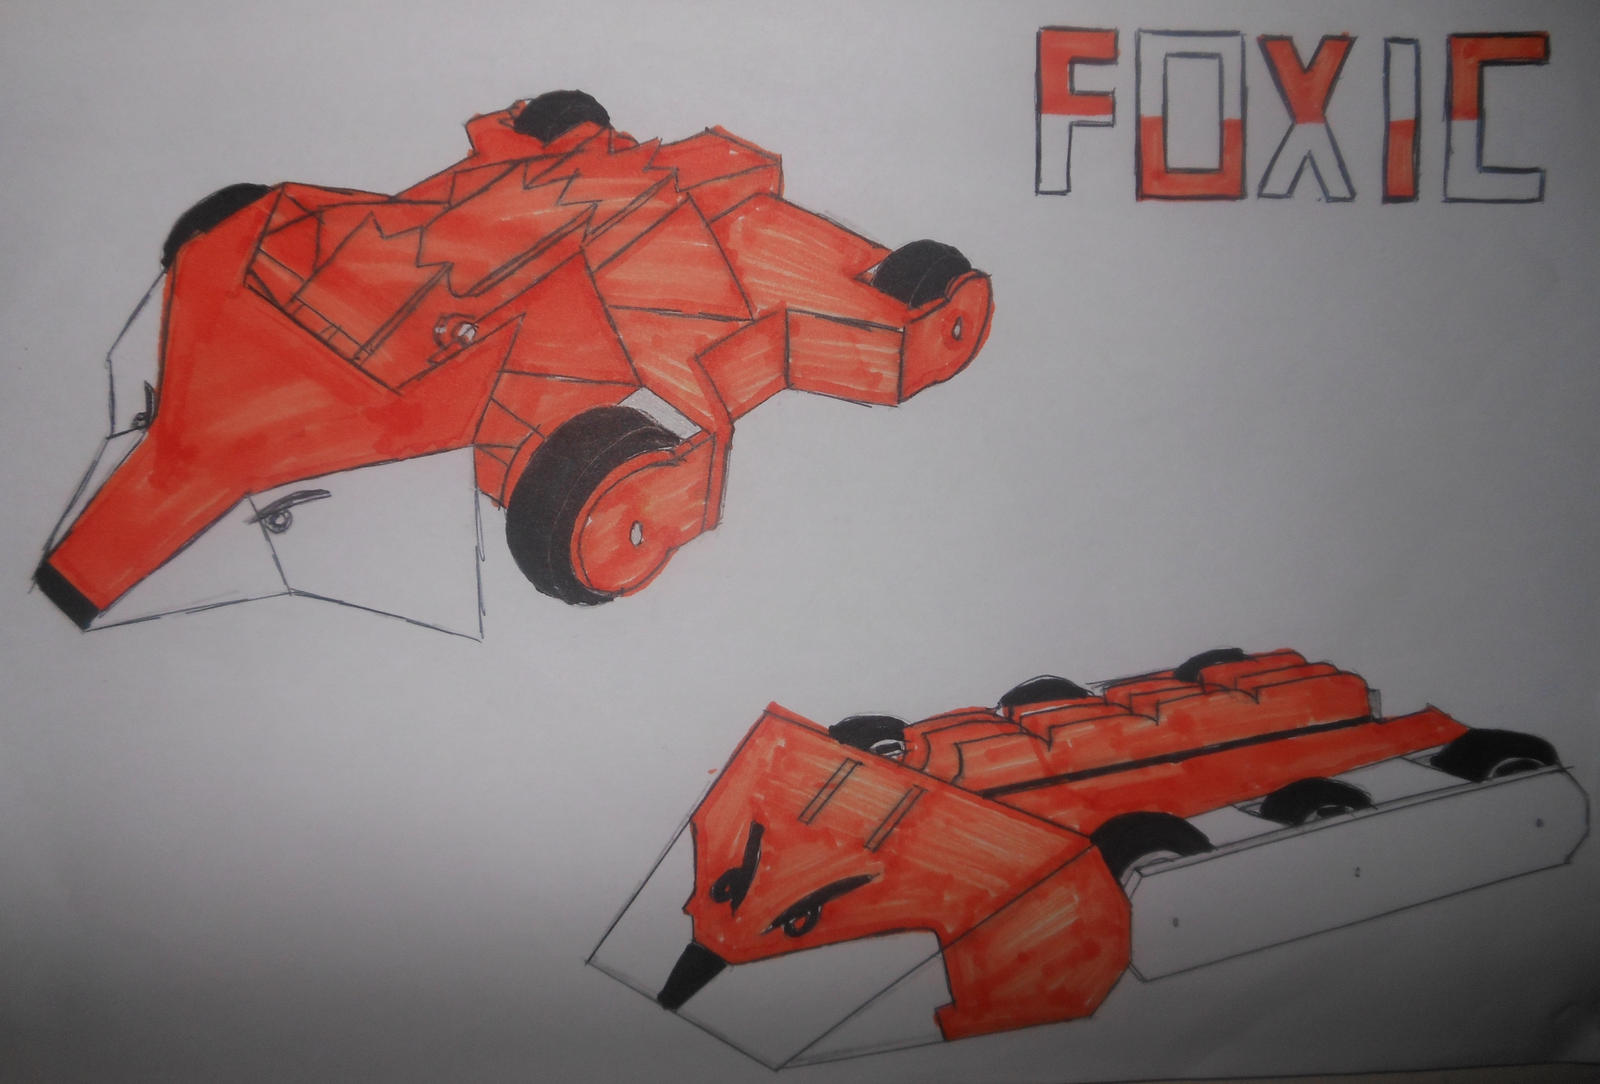 Robot Wars Foxic poster by sgtjack2016